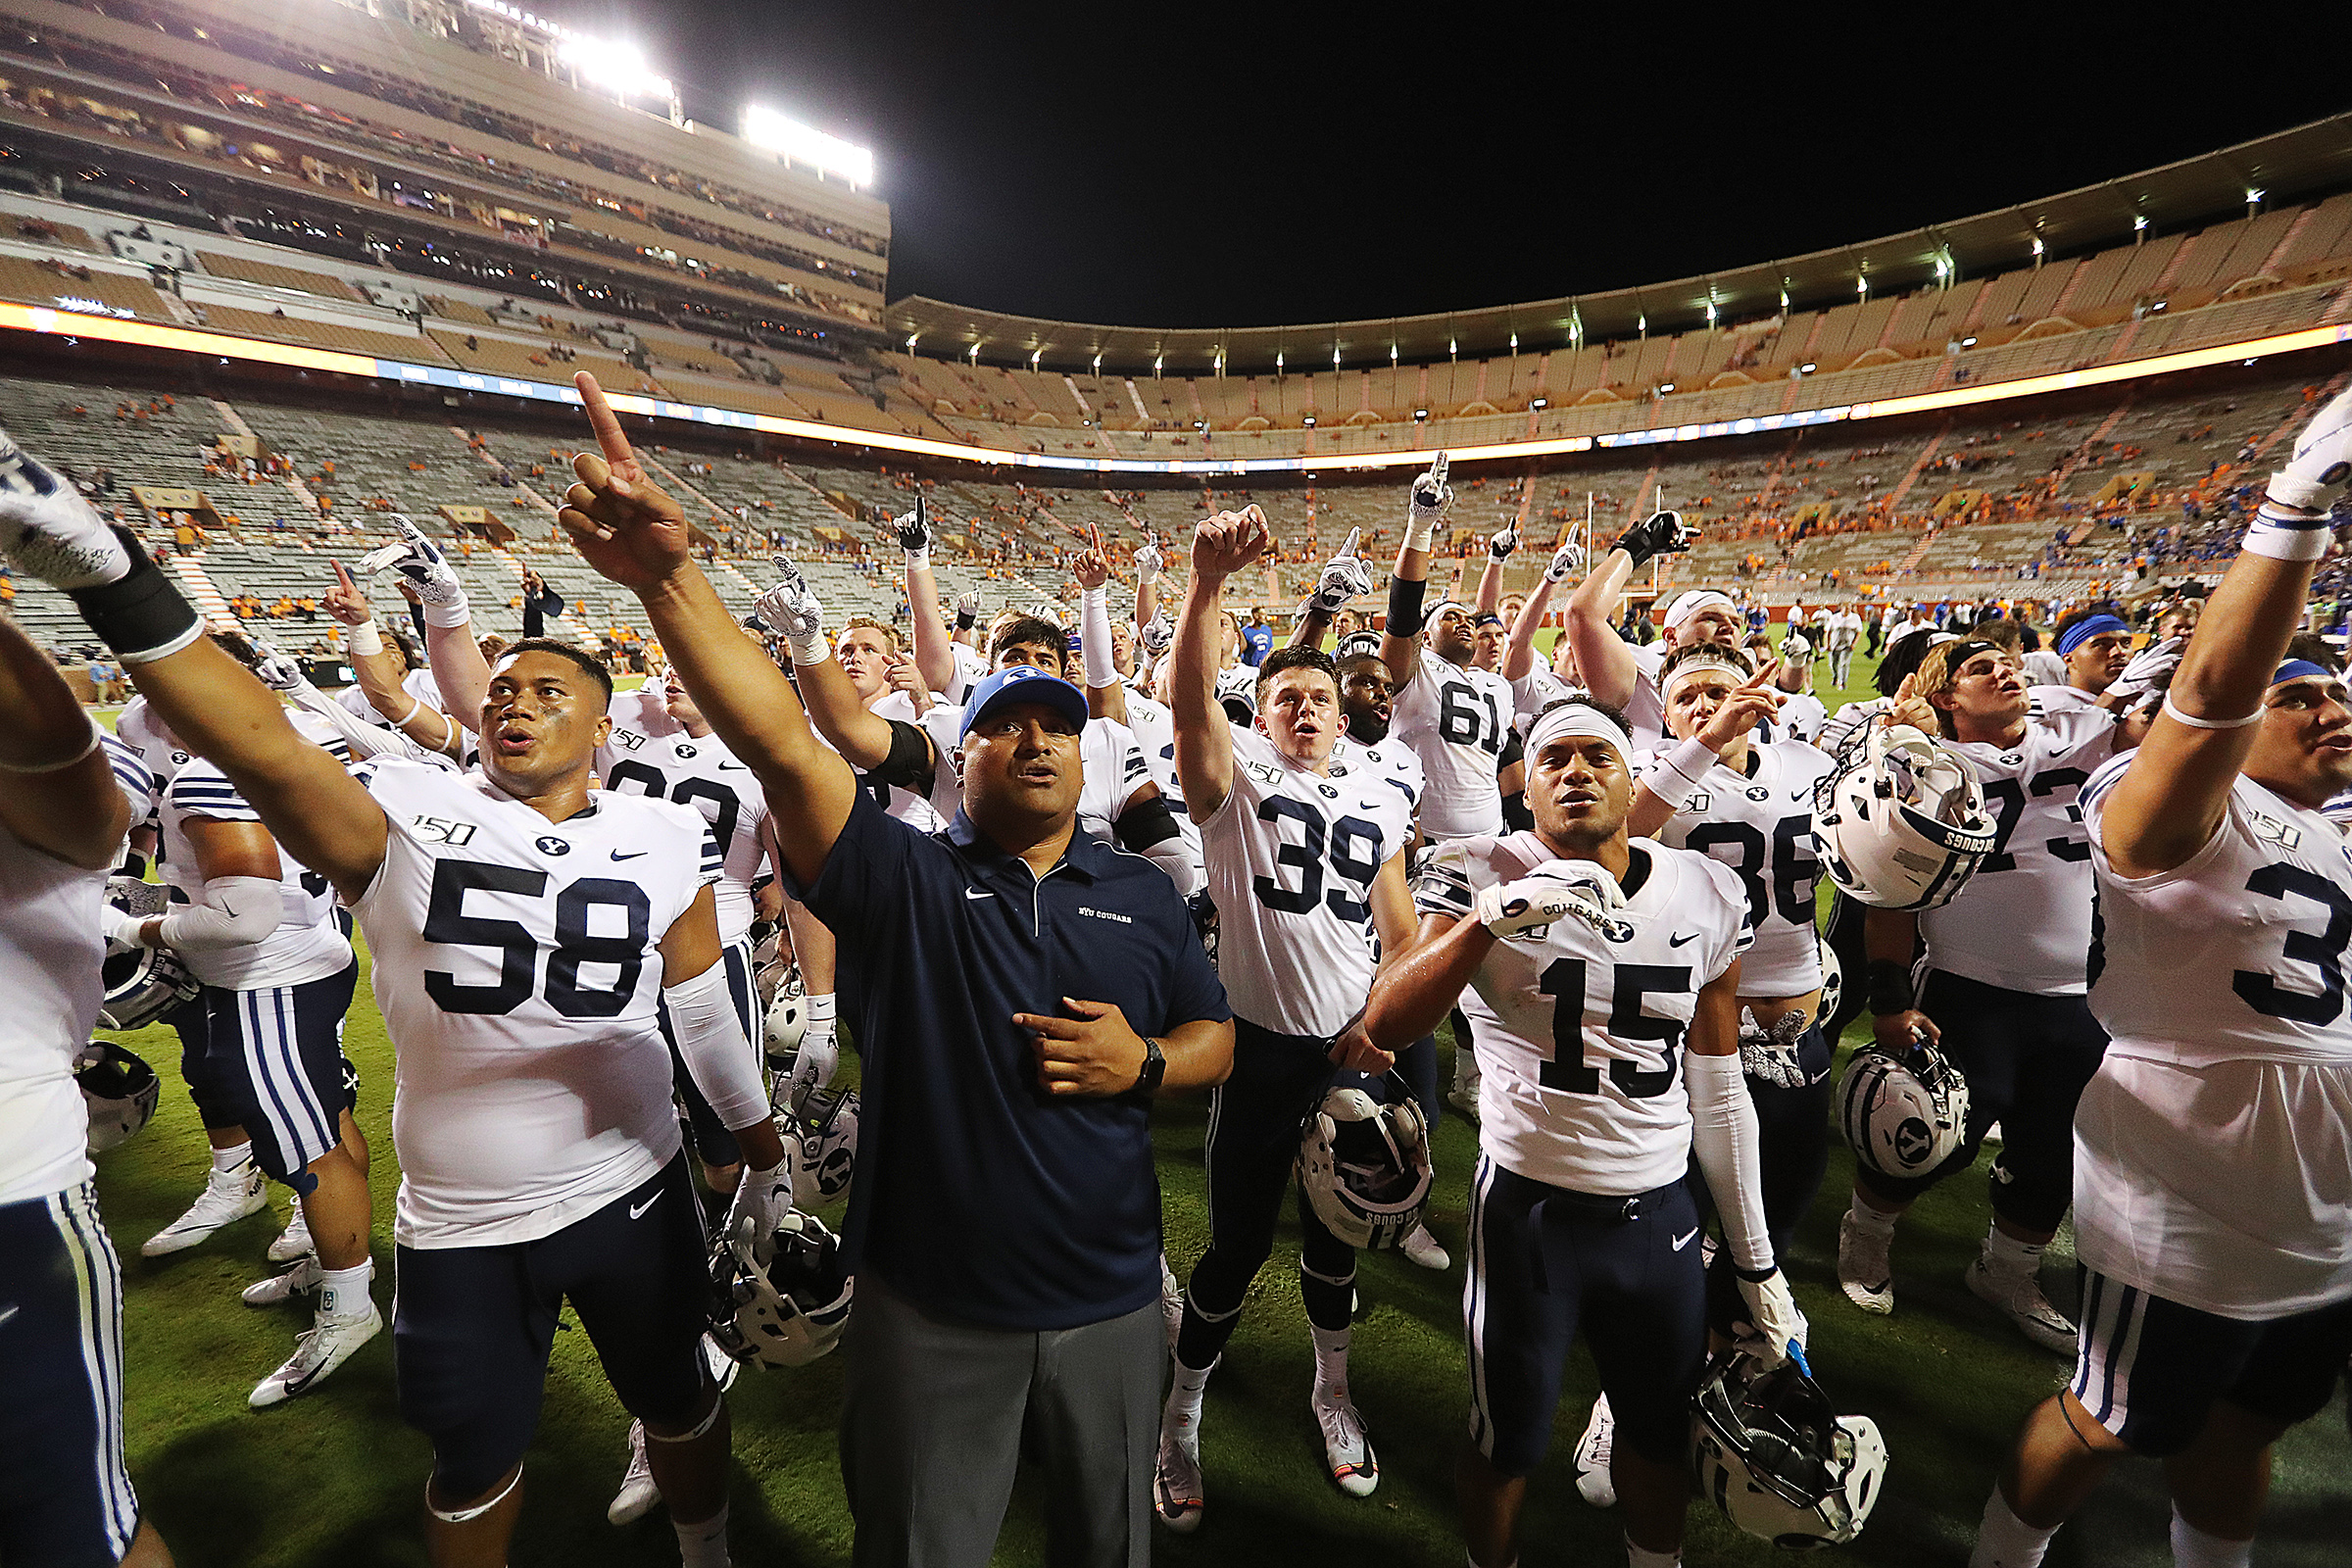 Head coach Kalani Sitake and his players sing to the fans high up in the upper deck as they celebrate their win over Tennessee in Knoxville on Saturday, Sept. 7, 2019. BYU won 29-26 in double overtime.